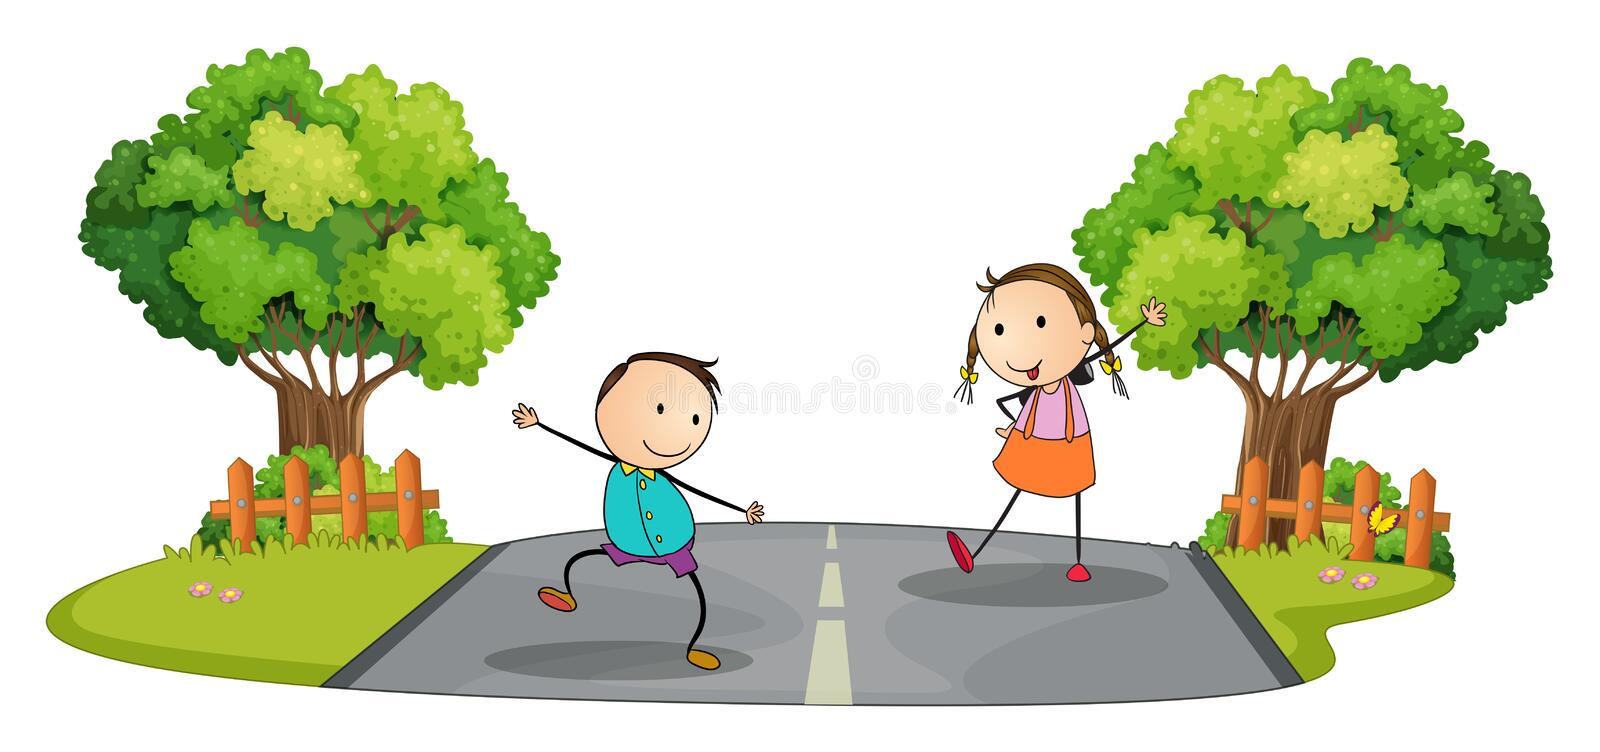 Two kids playing at the street royalty free illustration